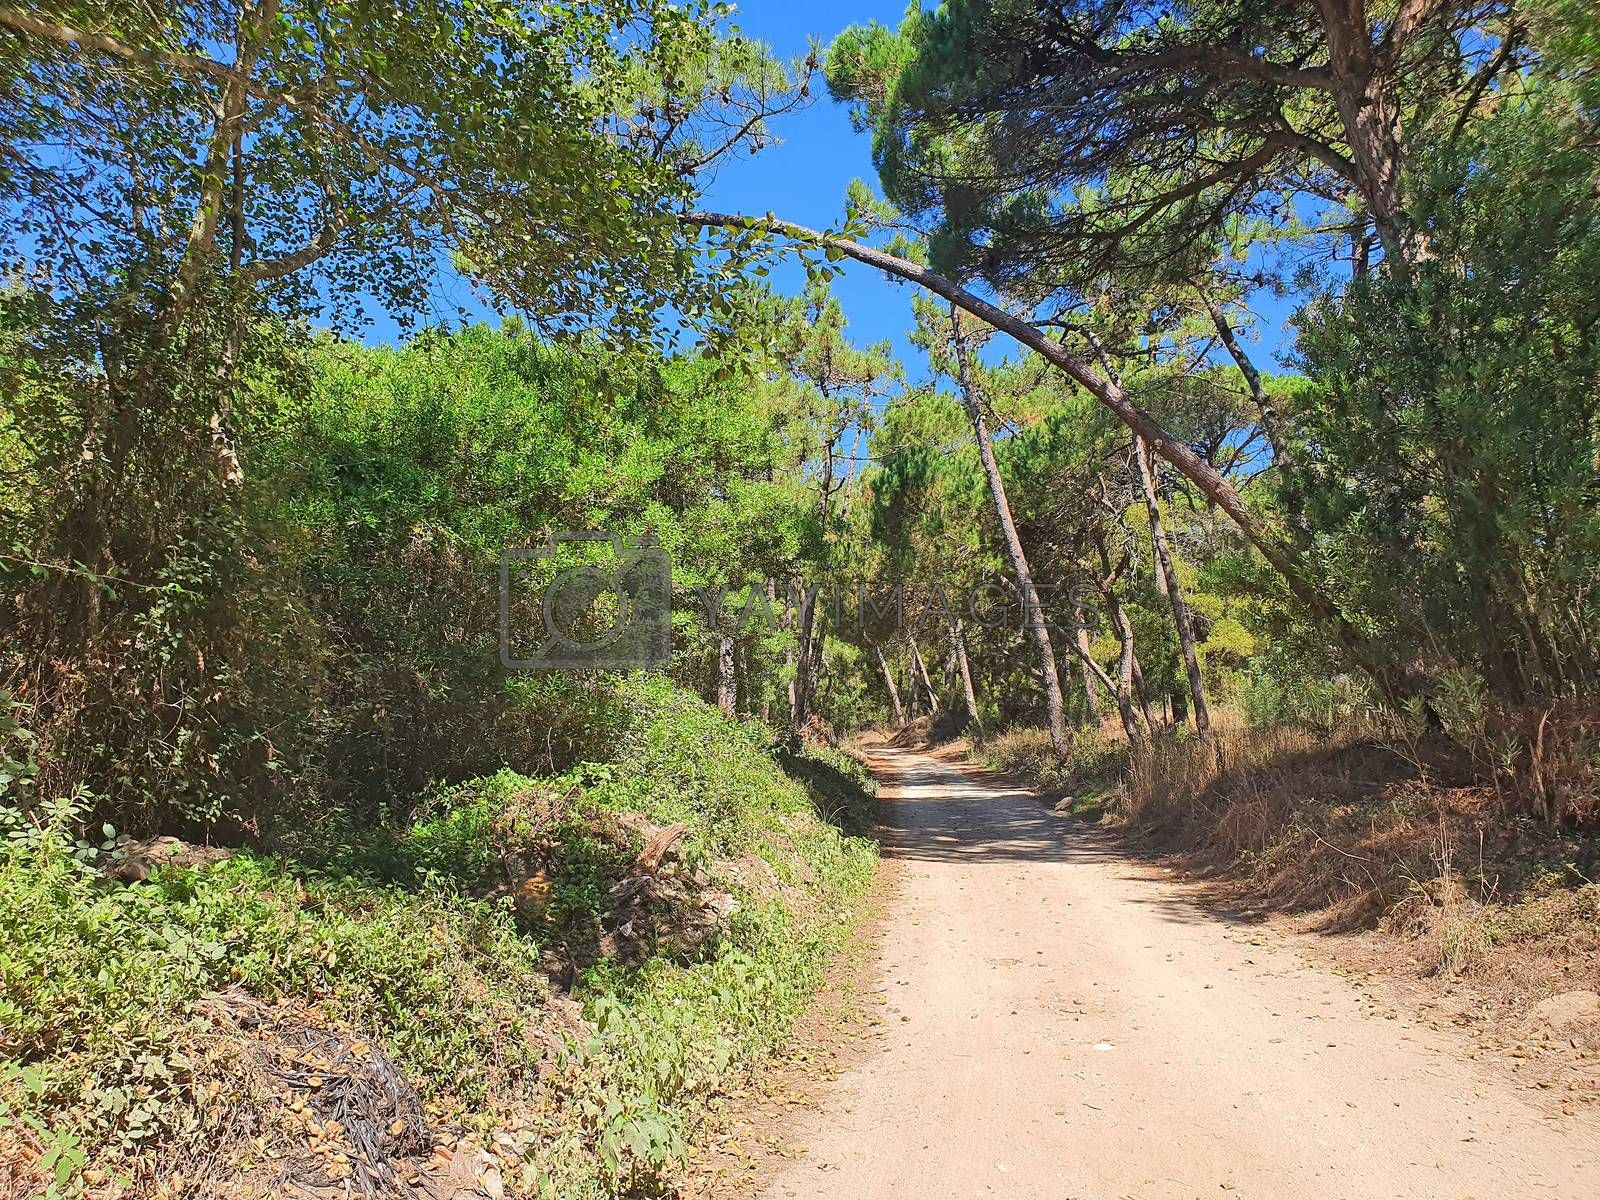 Country footpath in green pine forest near Pedrinhas in Portugal